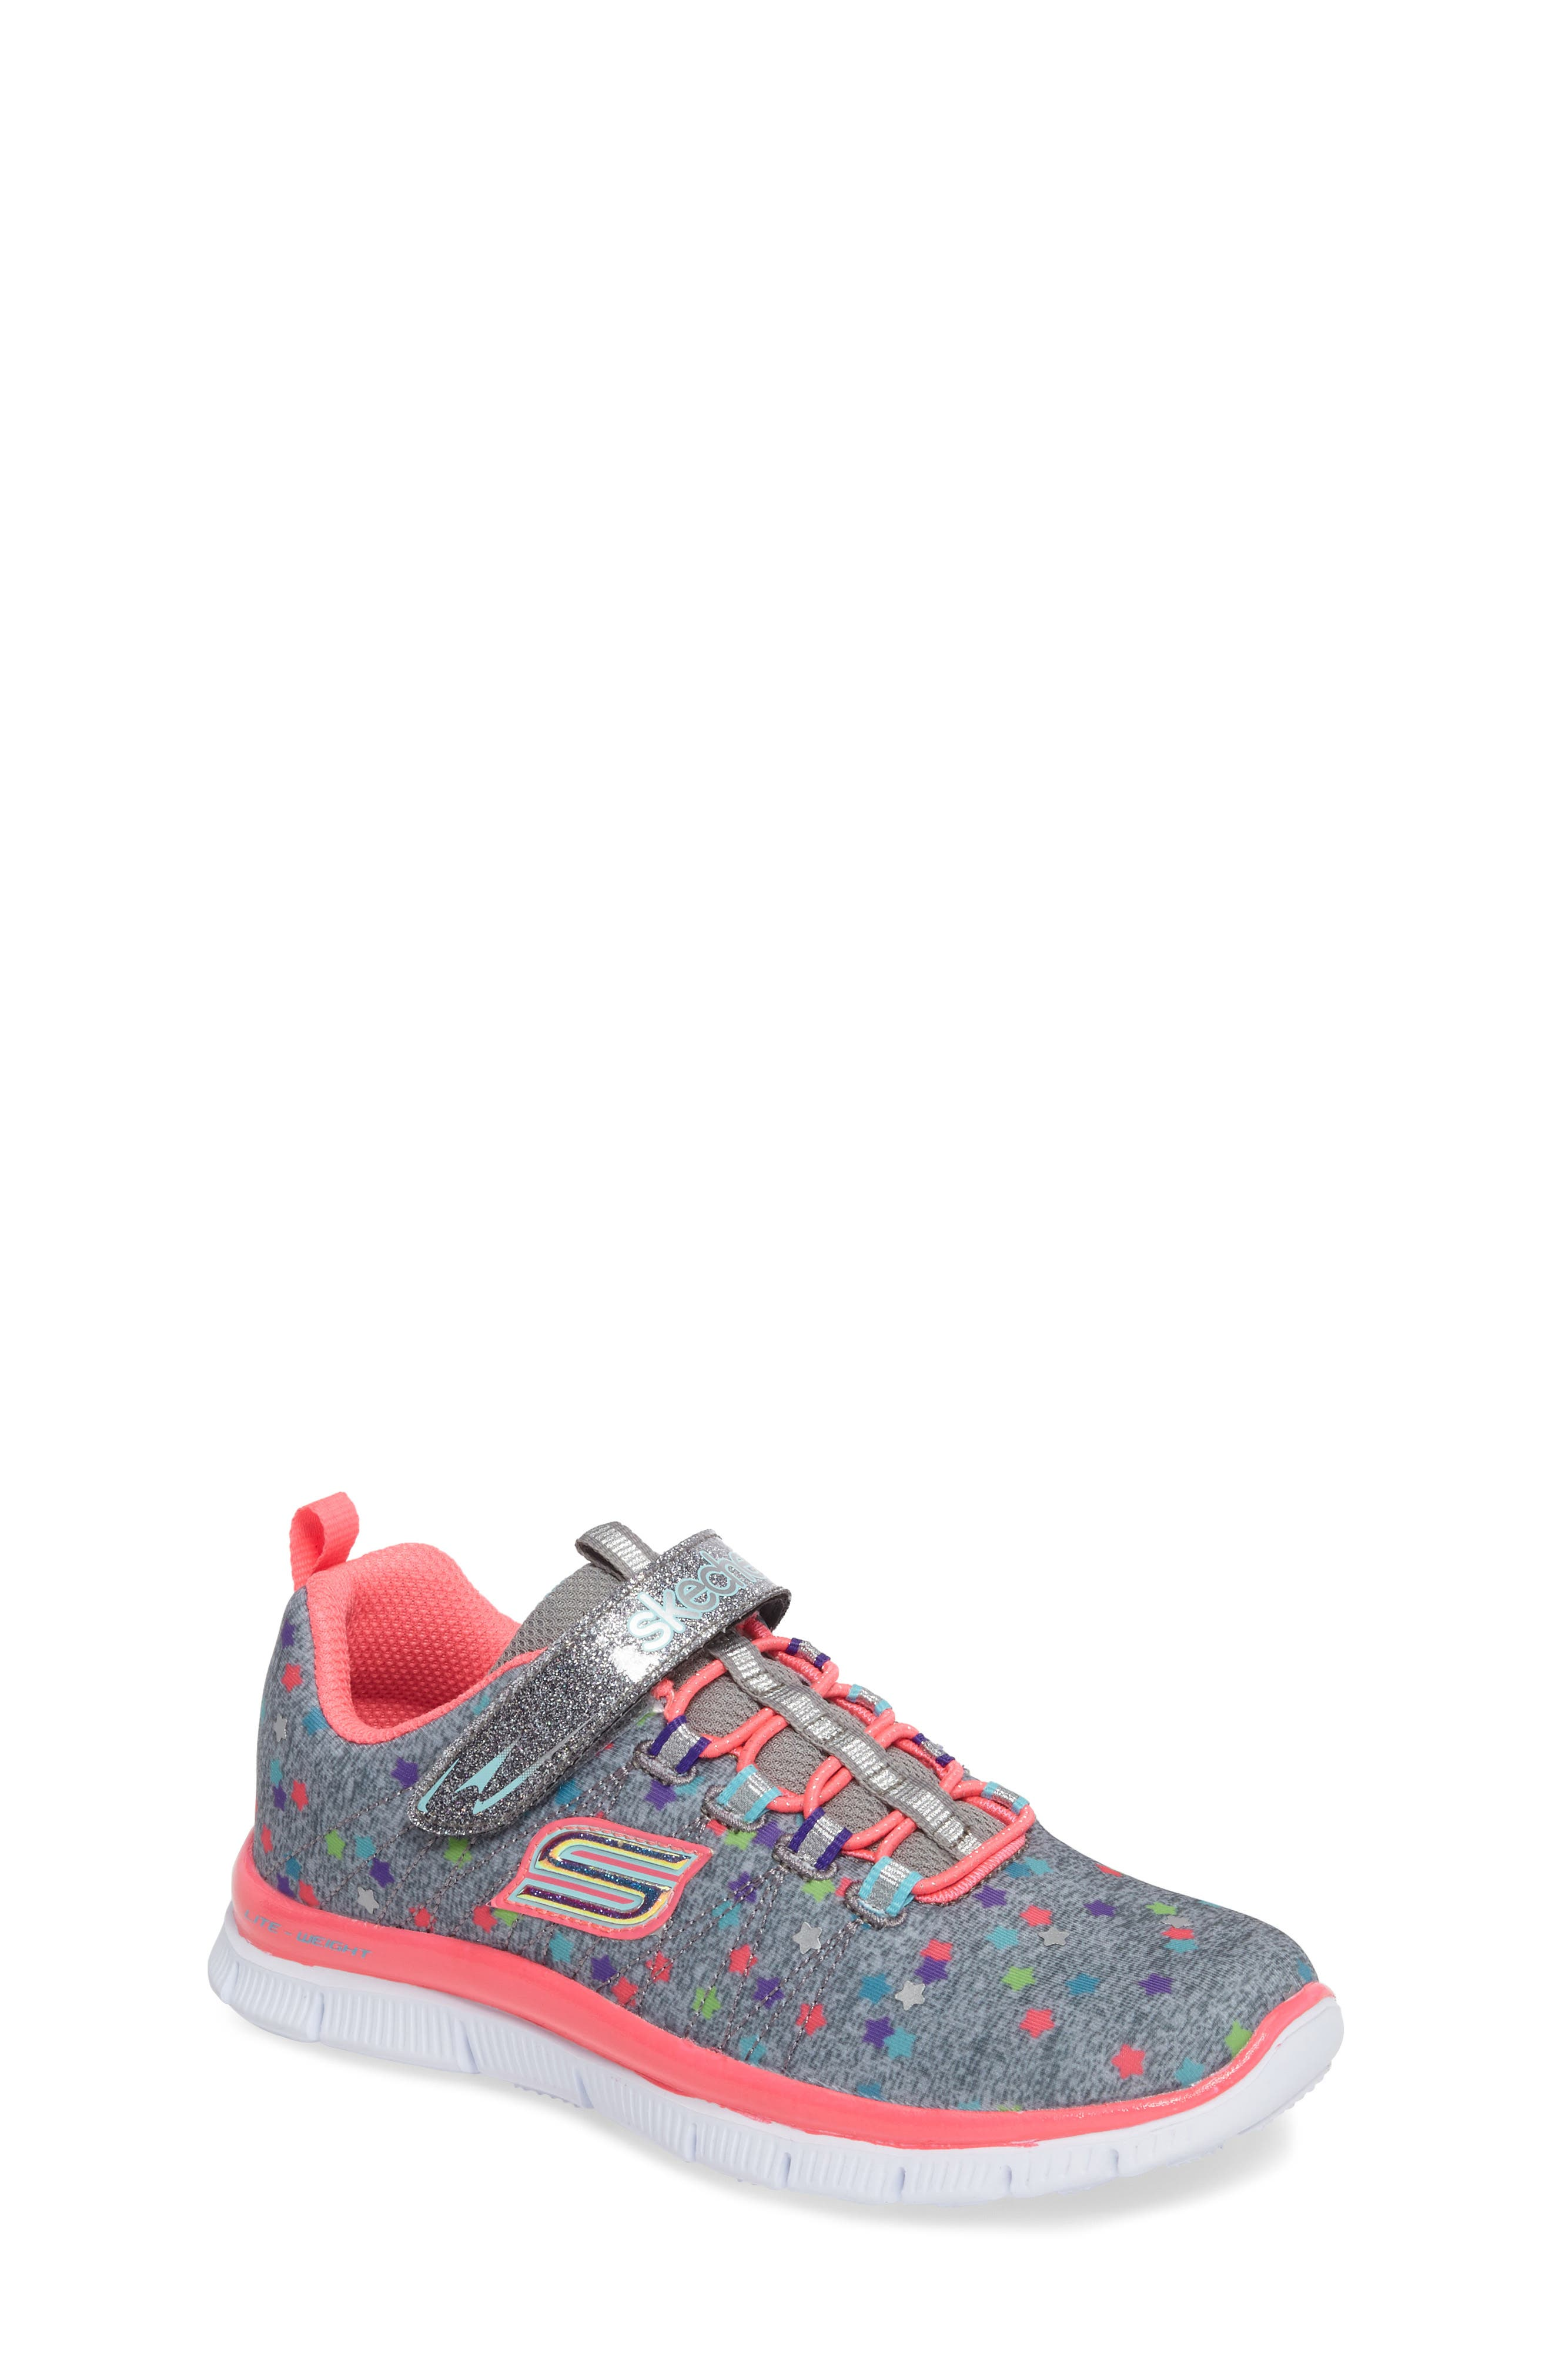 Skech Appeal Star Spirit Sneaker,                             Main thumbnail 1, color,                             Grey/ Multi